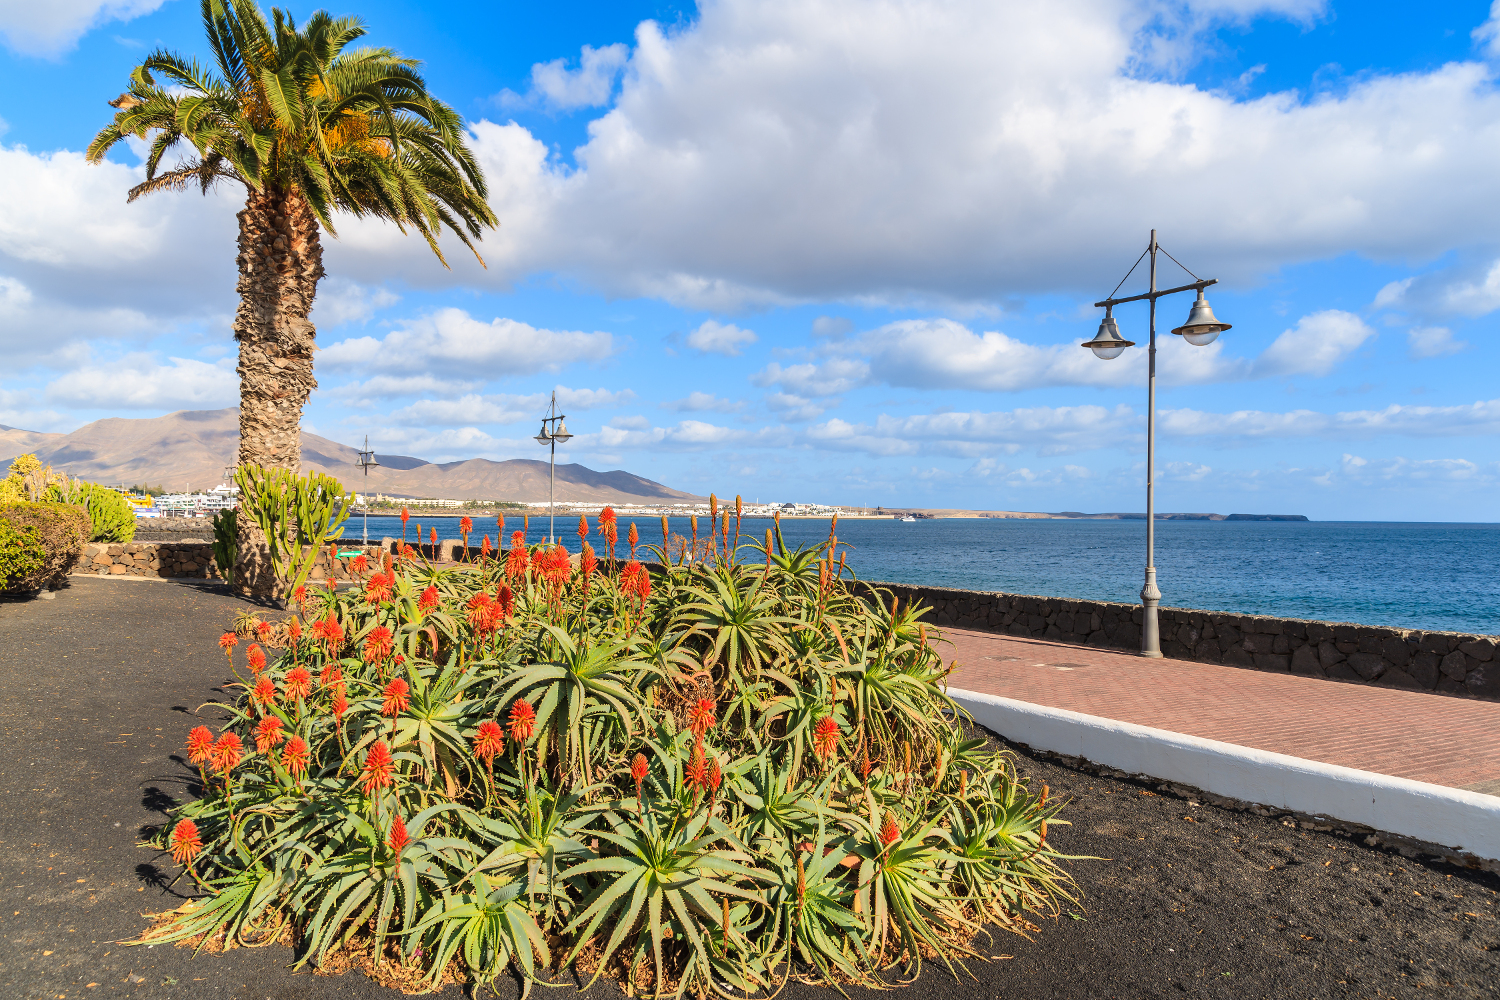 Tropical flowers in Playa Blanca, Lanzarote